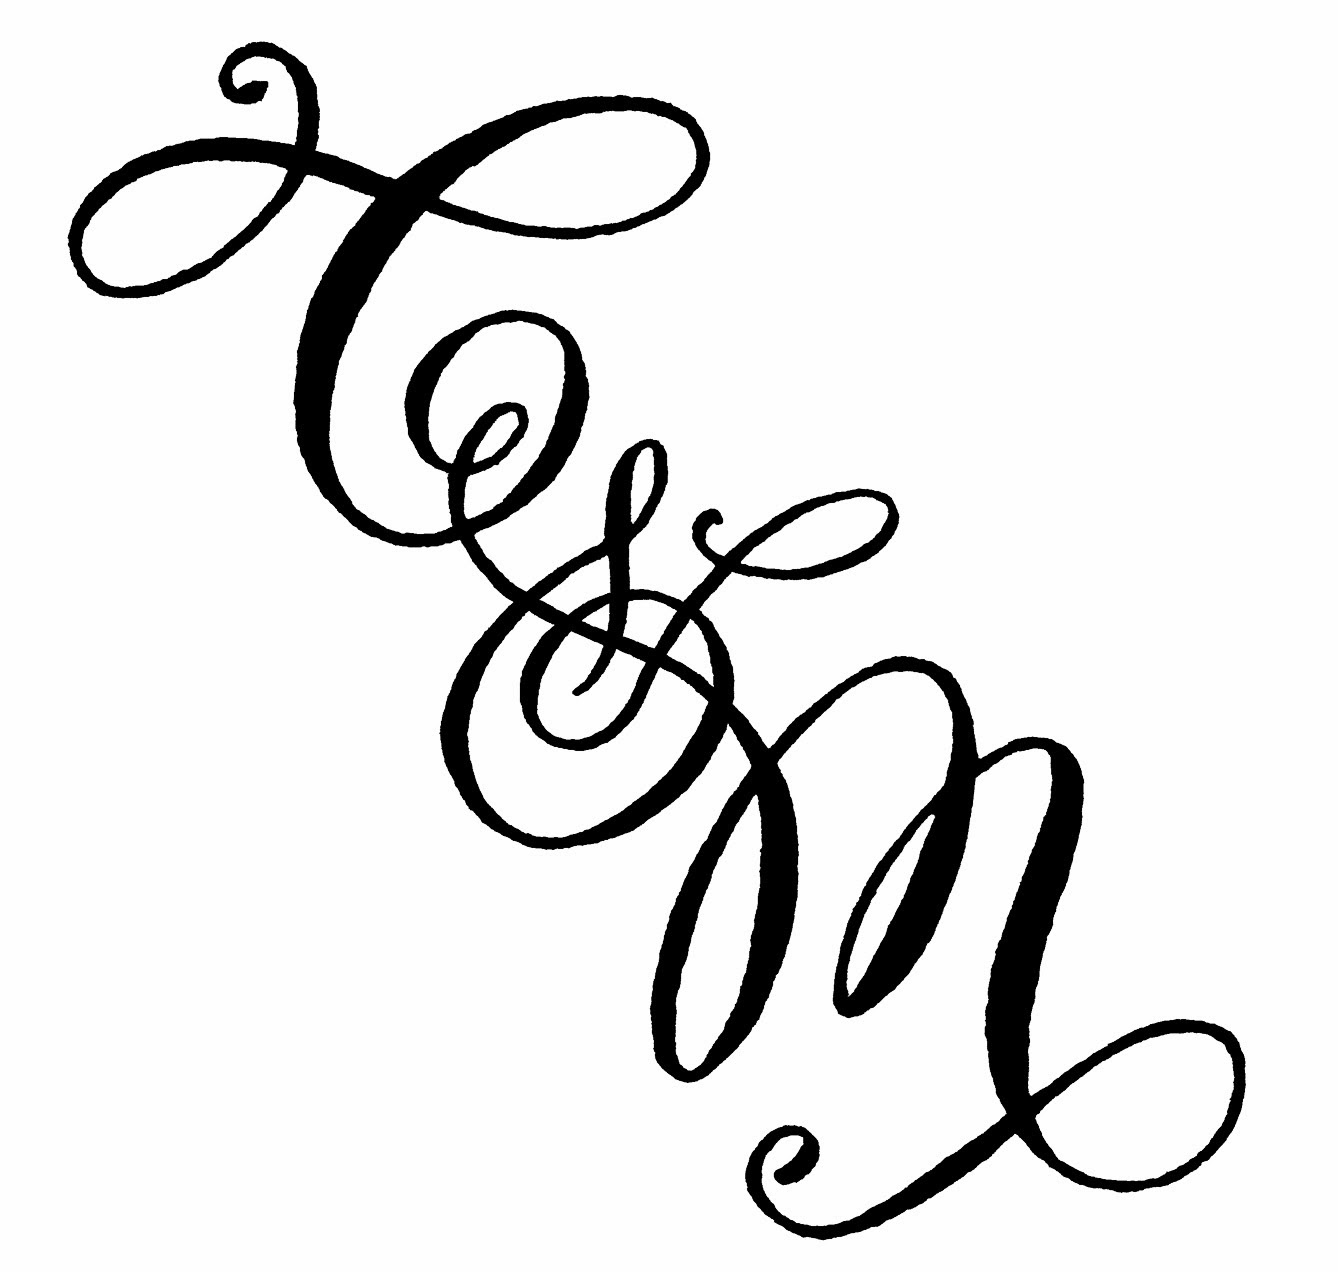 A To Z Calligraphy Monograms